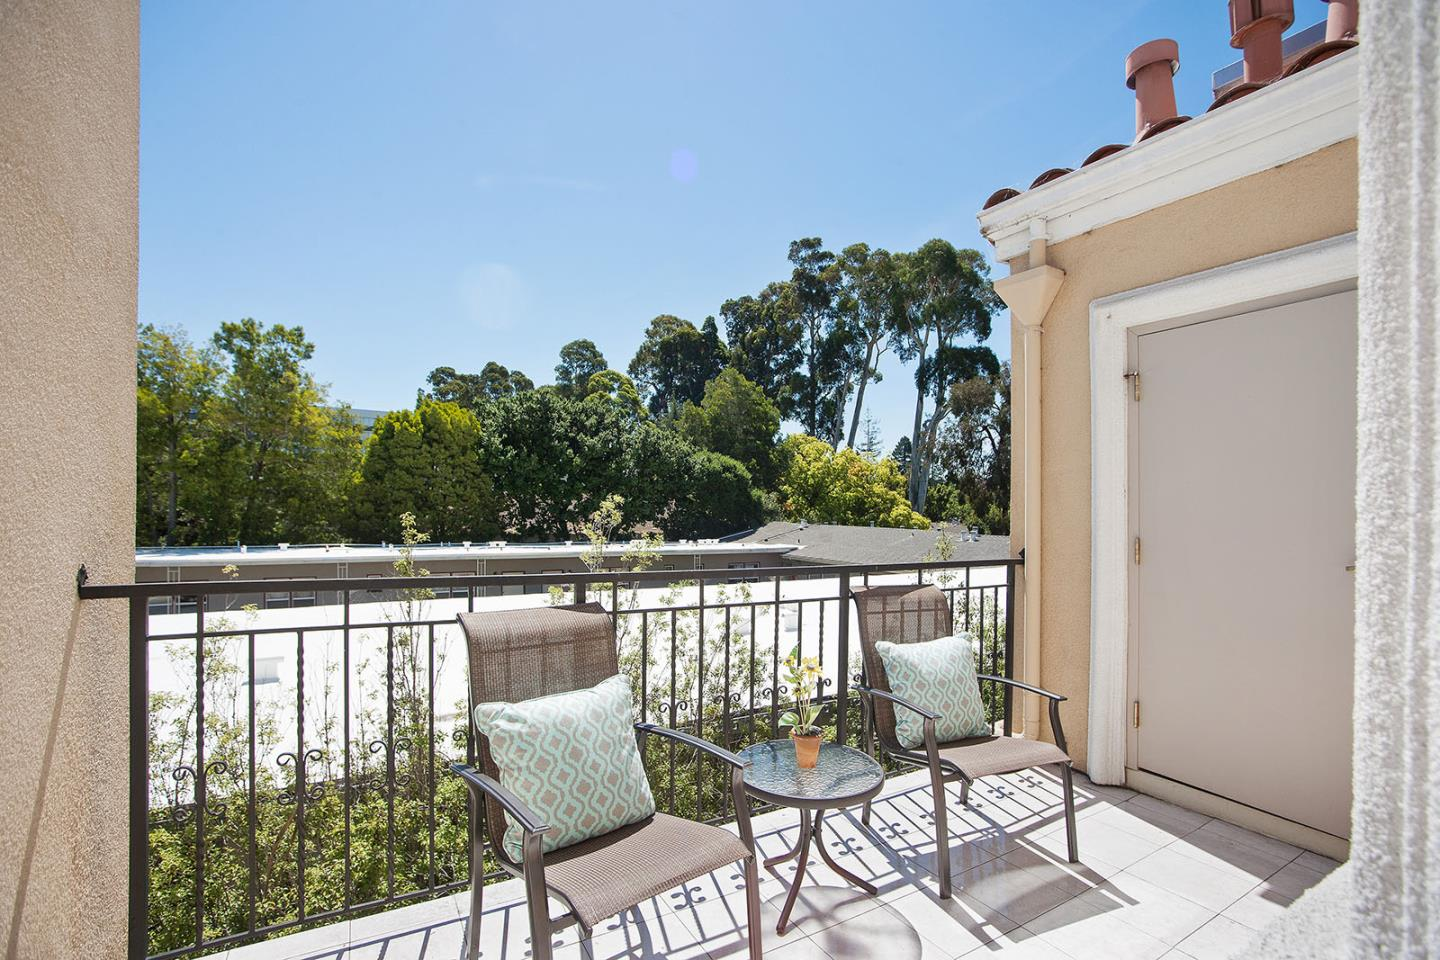 Additional photo for property listing at 530 El Camino Real 308  BURLINGAME, CALIFORNIA 94010